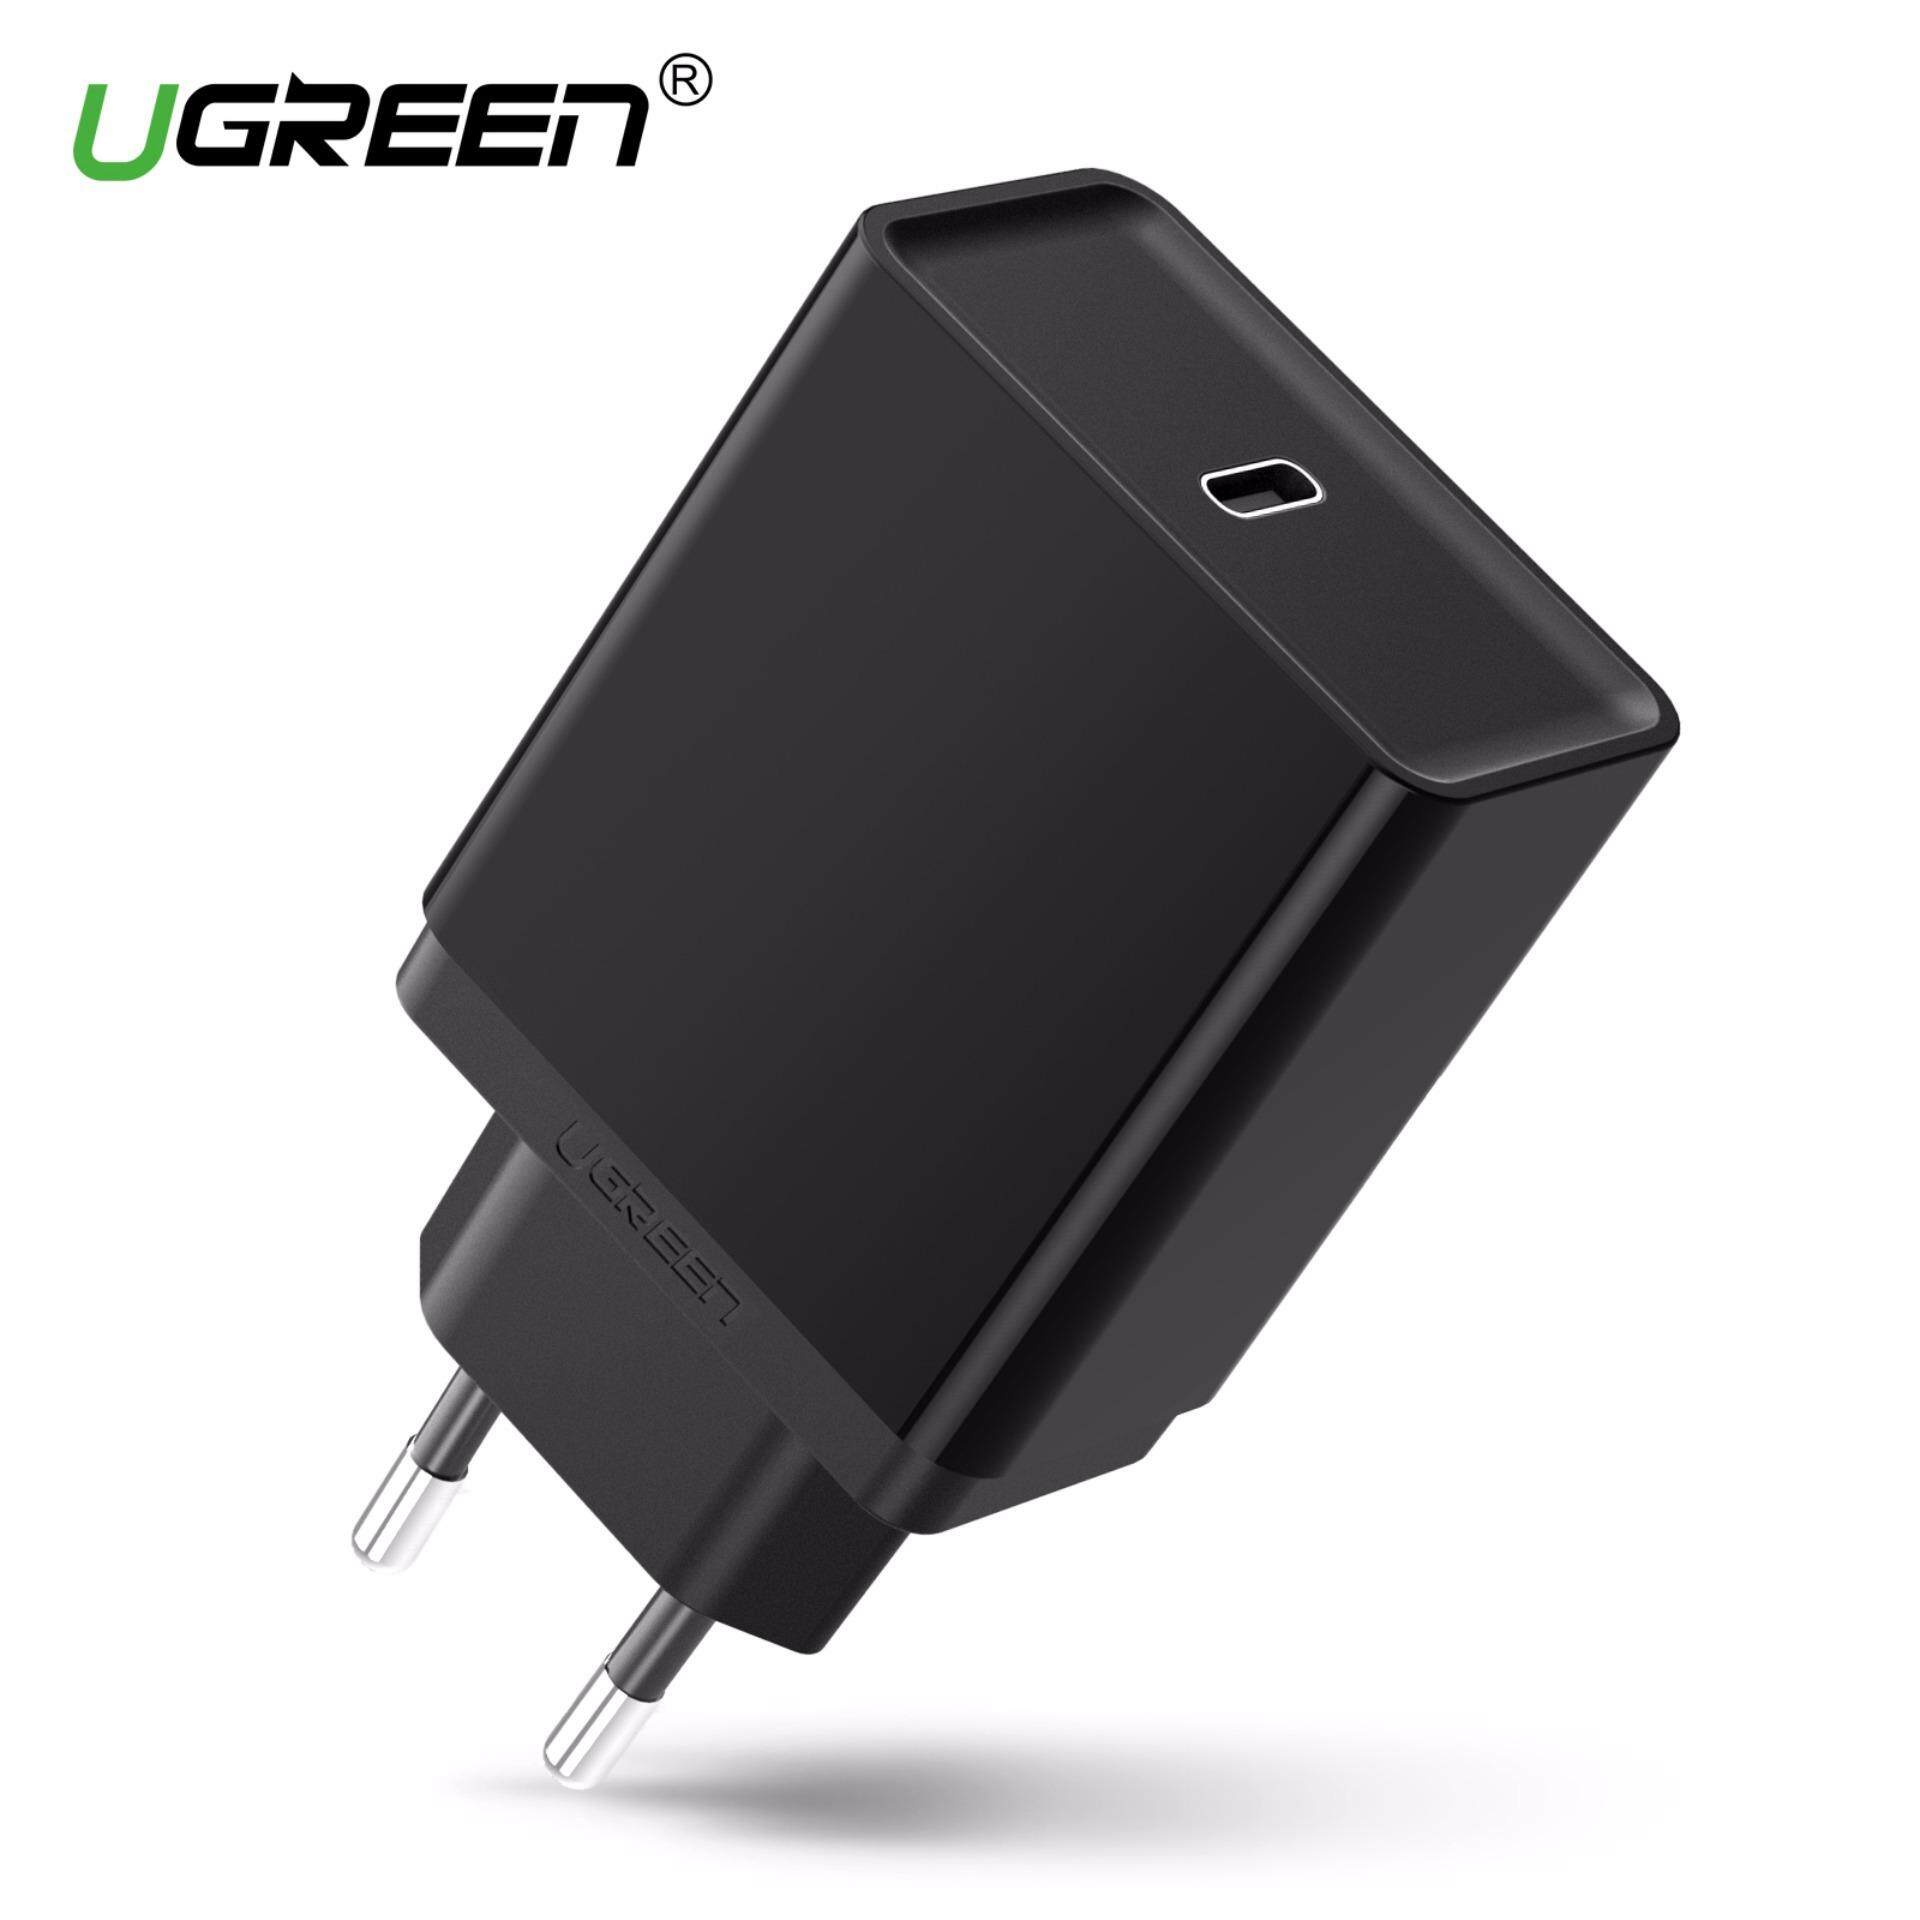 UGREEN USB Type-C 30W Wall Charger With Power Delivery Fast Chargingfor iPhone 7/ 8/X/8 plus,Huawei mate 9/mate 10/P20,Samsung Galaxy S8/S9,Macbook, Nexus 6P/5X,Nintendo Switch,Google Pixel 2 XL EU Plug - intl